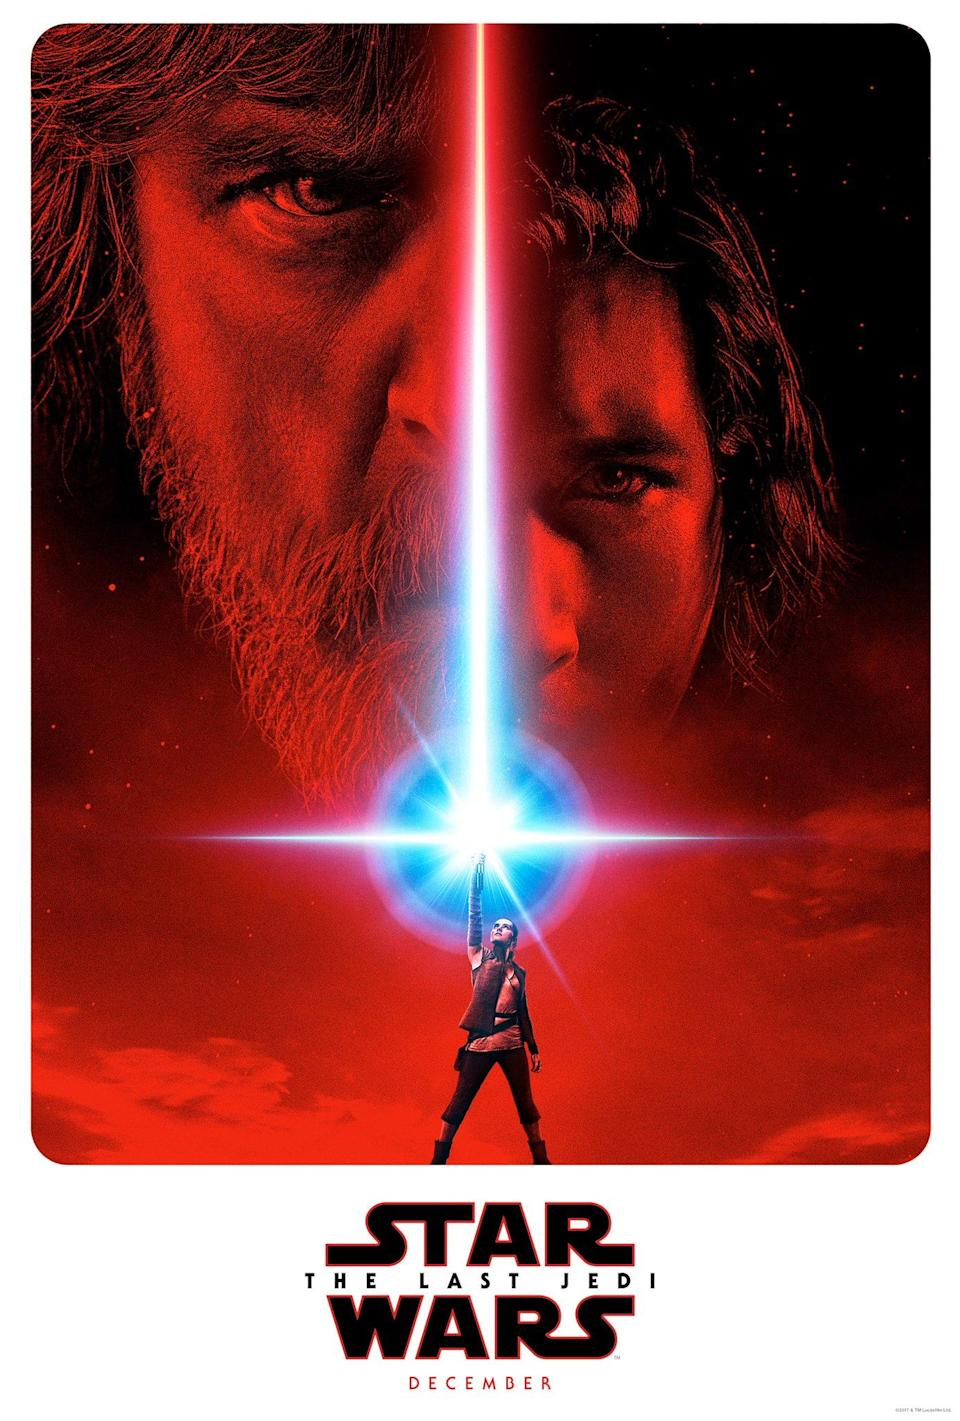 An advance poster for Star Wars: The Last Jedi.